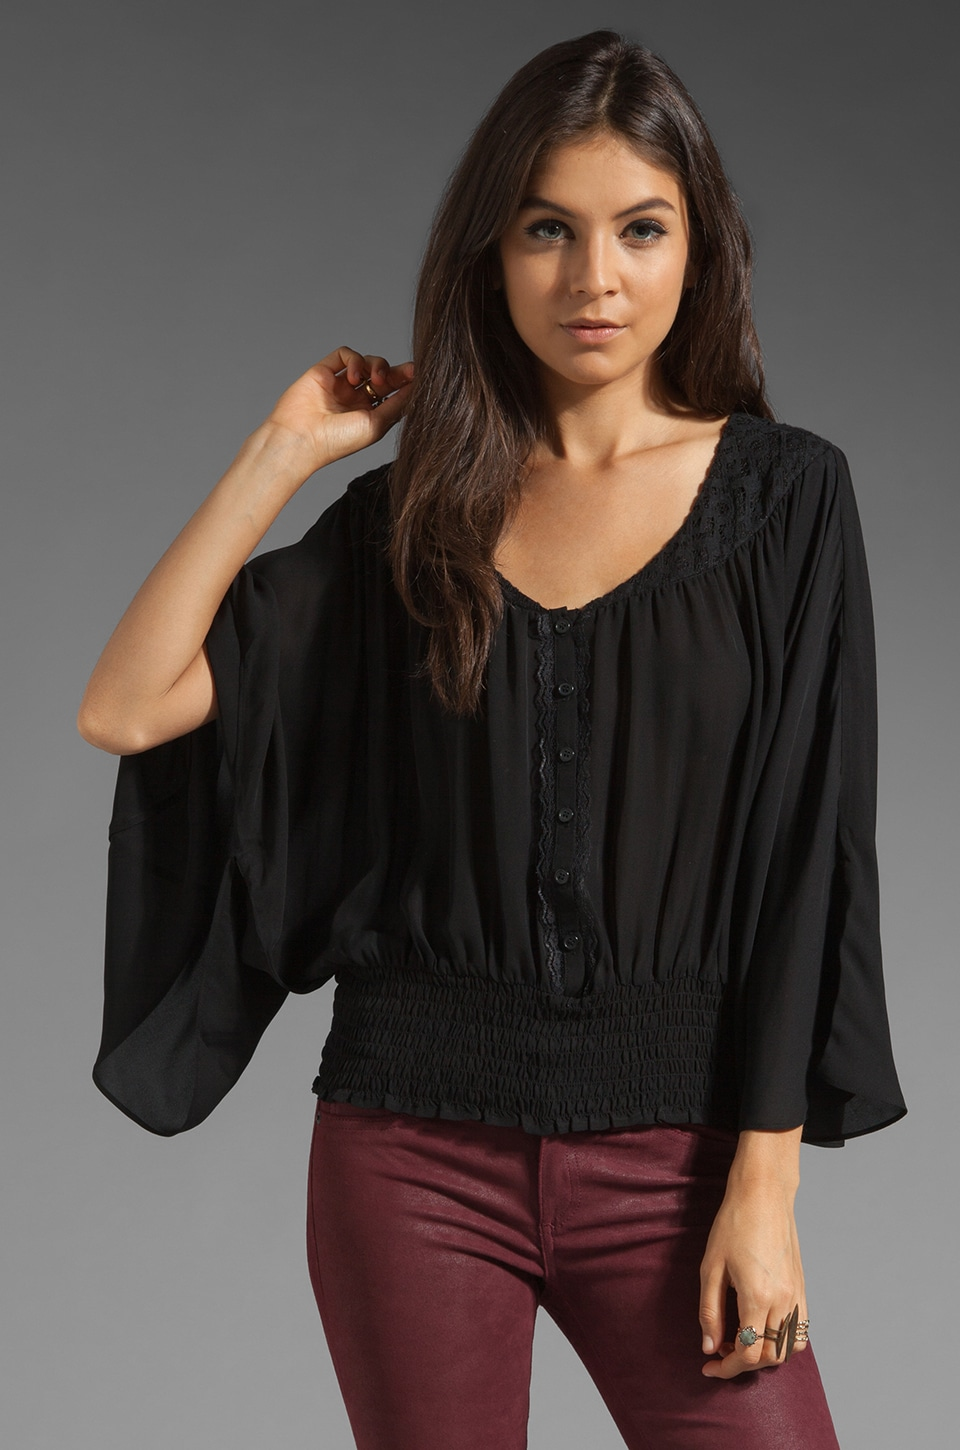 Beyond Vintage Beyond Silk Vintage Batwing Top with Lace in Black